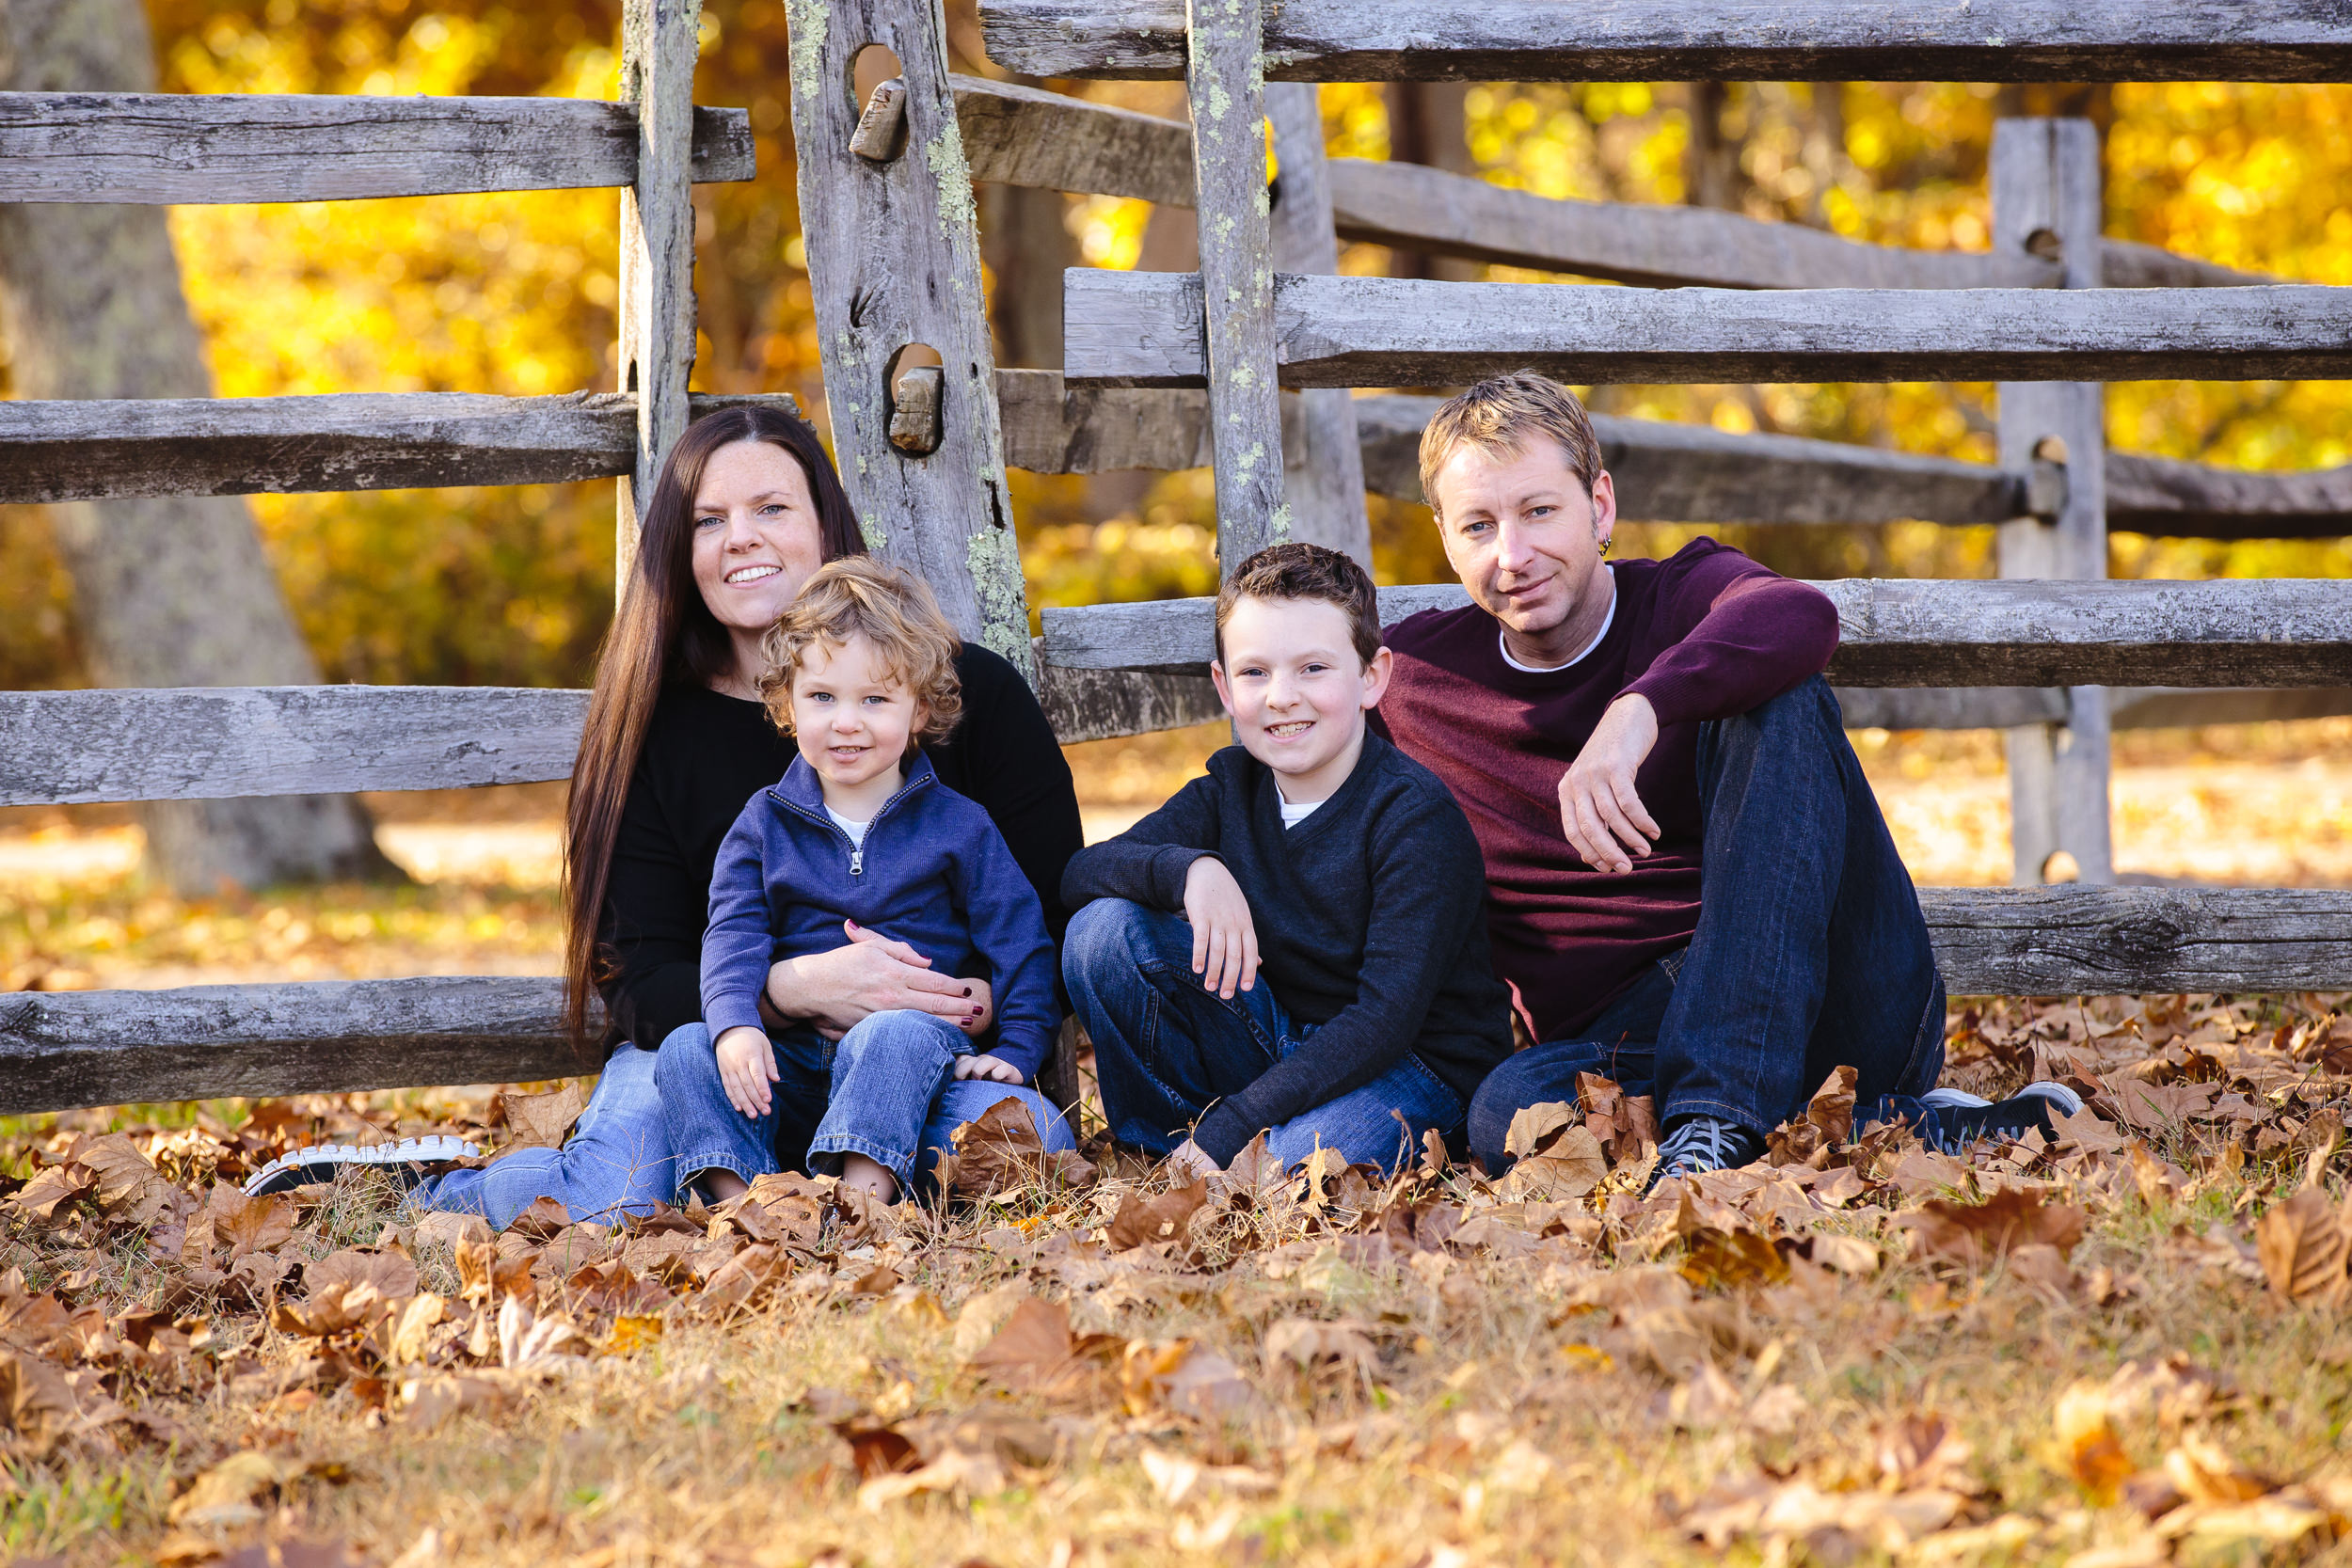 family portrait allaire village wall nj fall autumn leaves